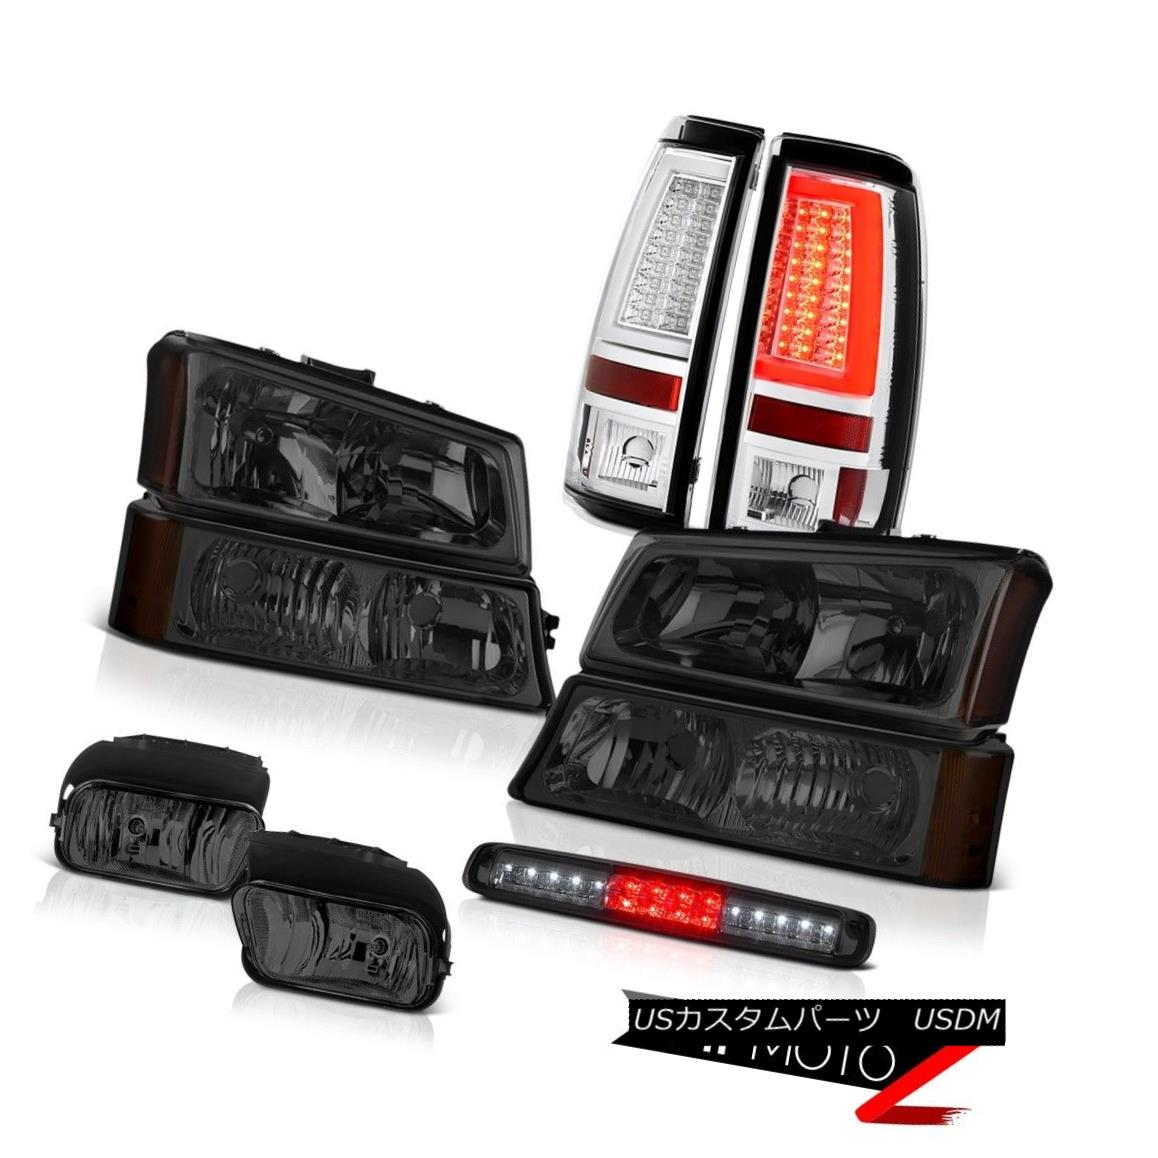 テールライト 2003-2006 Silverado 1500 Taillamps Headlights Foglamps 3RD Brake Lamp Light Bar 2003-2006 Silverado 1500 Taillampsヘッドライトフォグランプ3RDブレーキランプライトバー